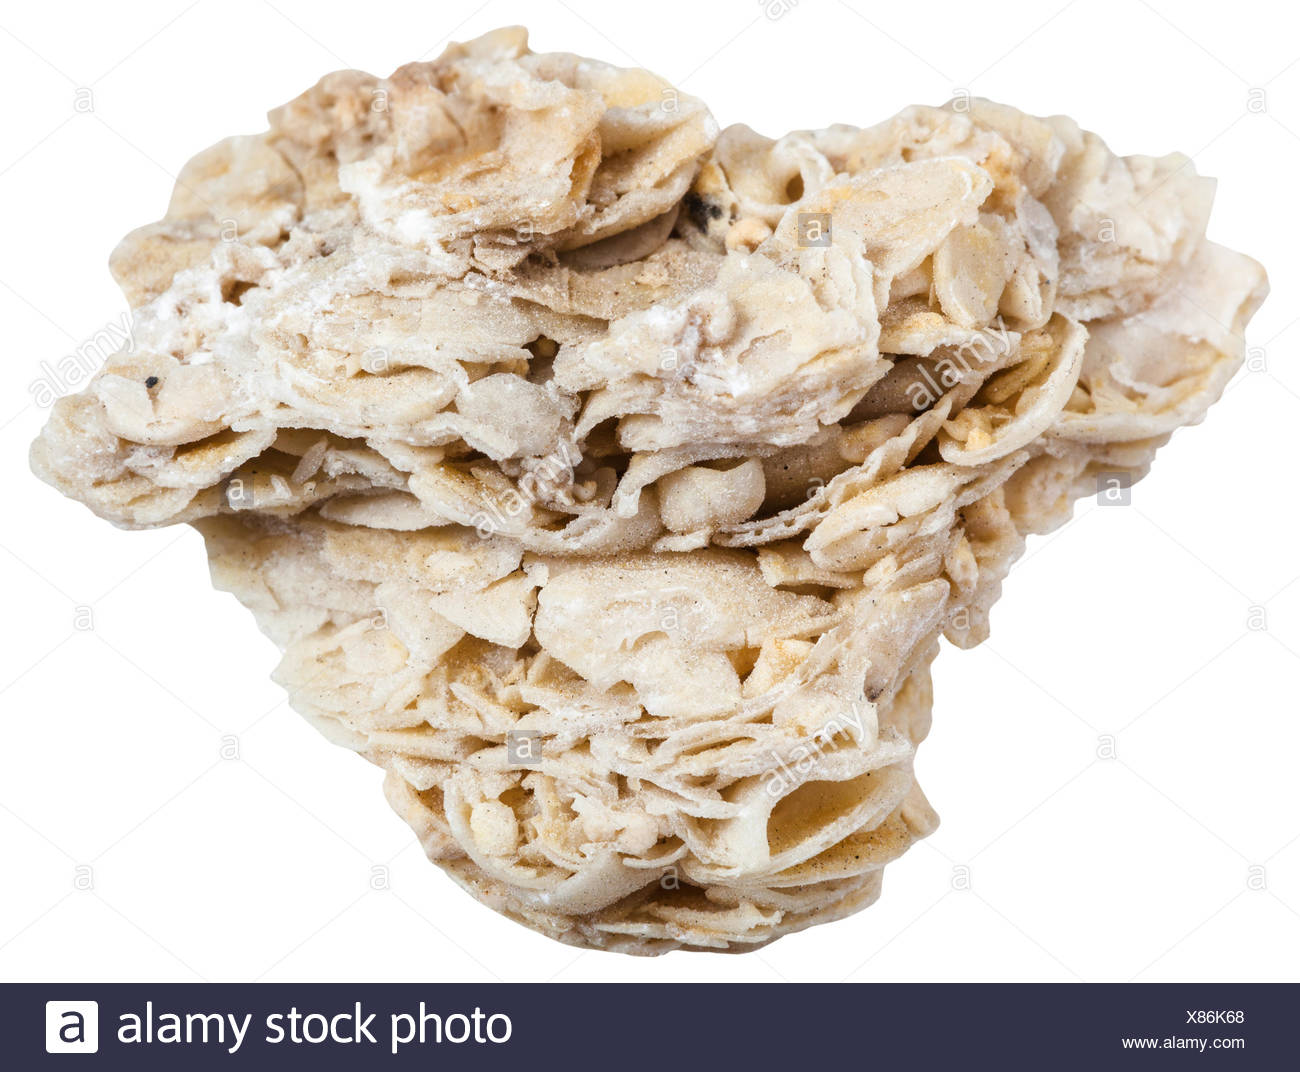 coquina limestone (shell rock) mineral isolated - Stock Image